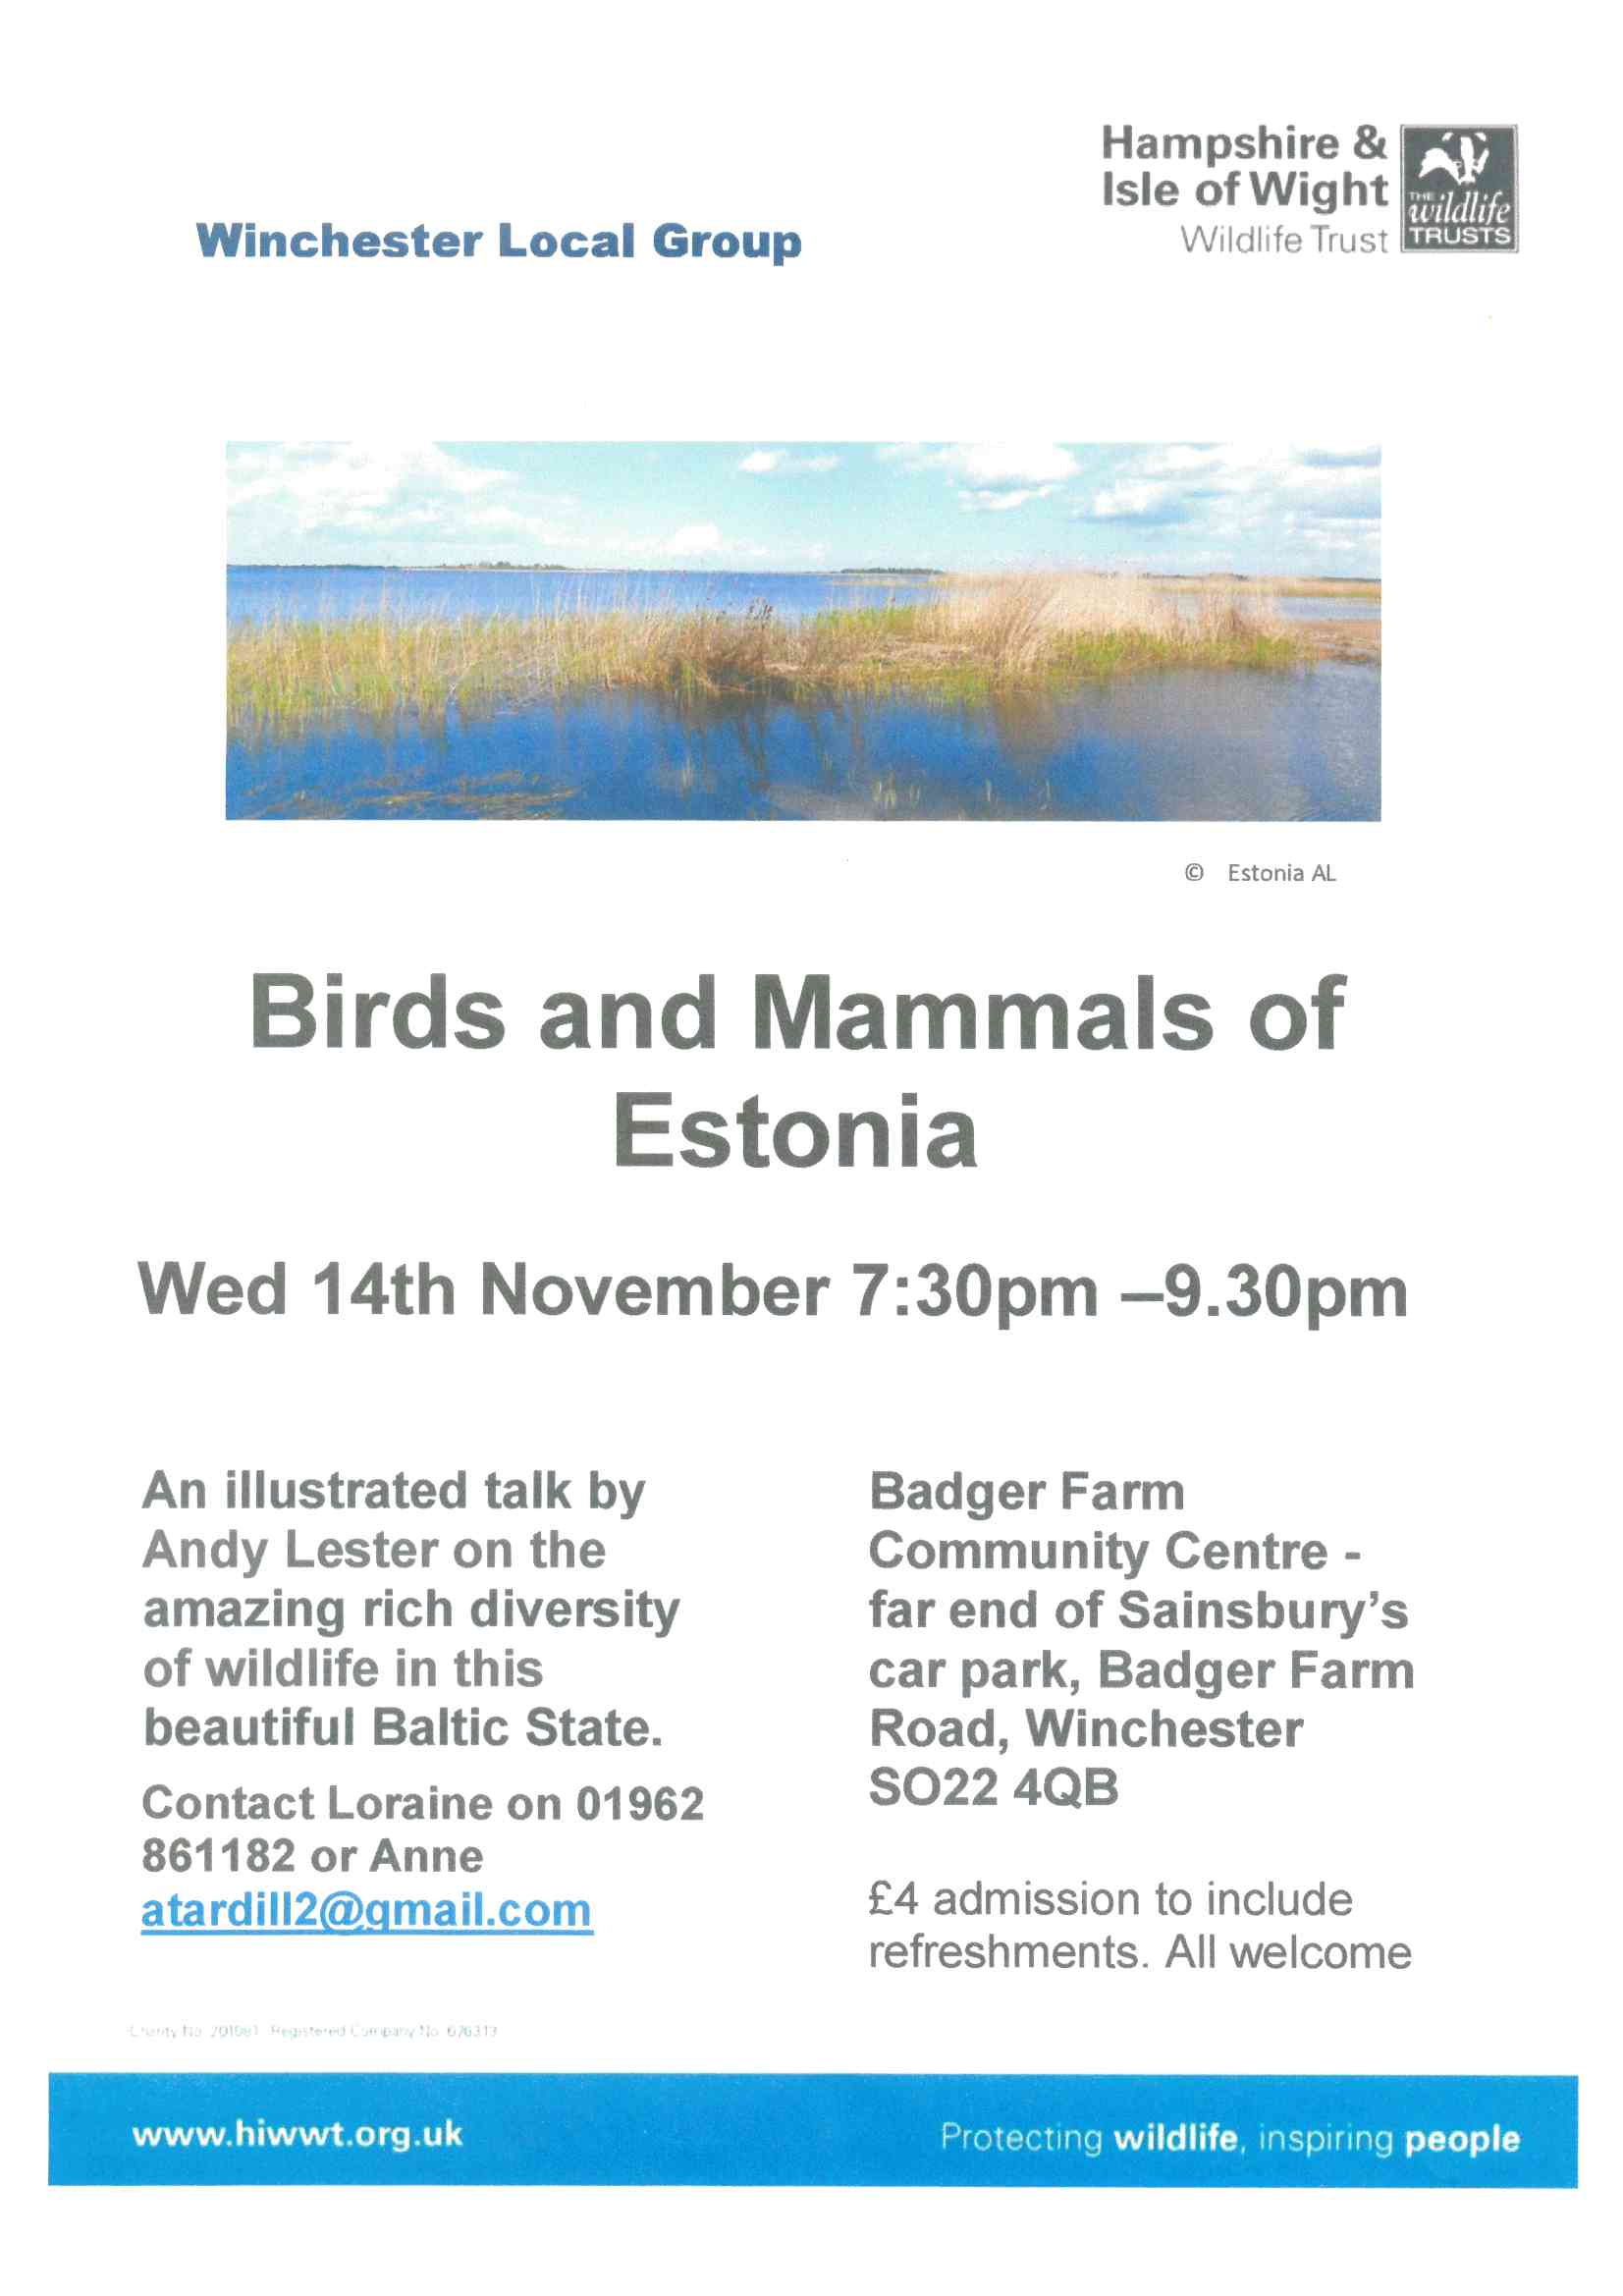 Talk by Andy Lester on the amazing rich diversity of wildlife in this beautiful Baltic State,